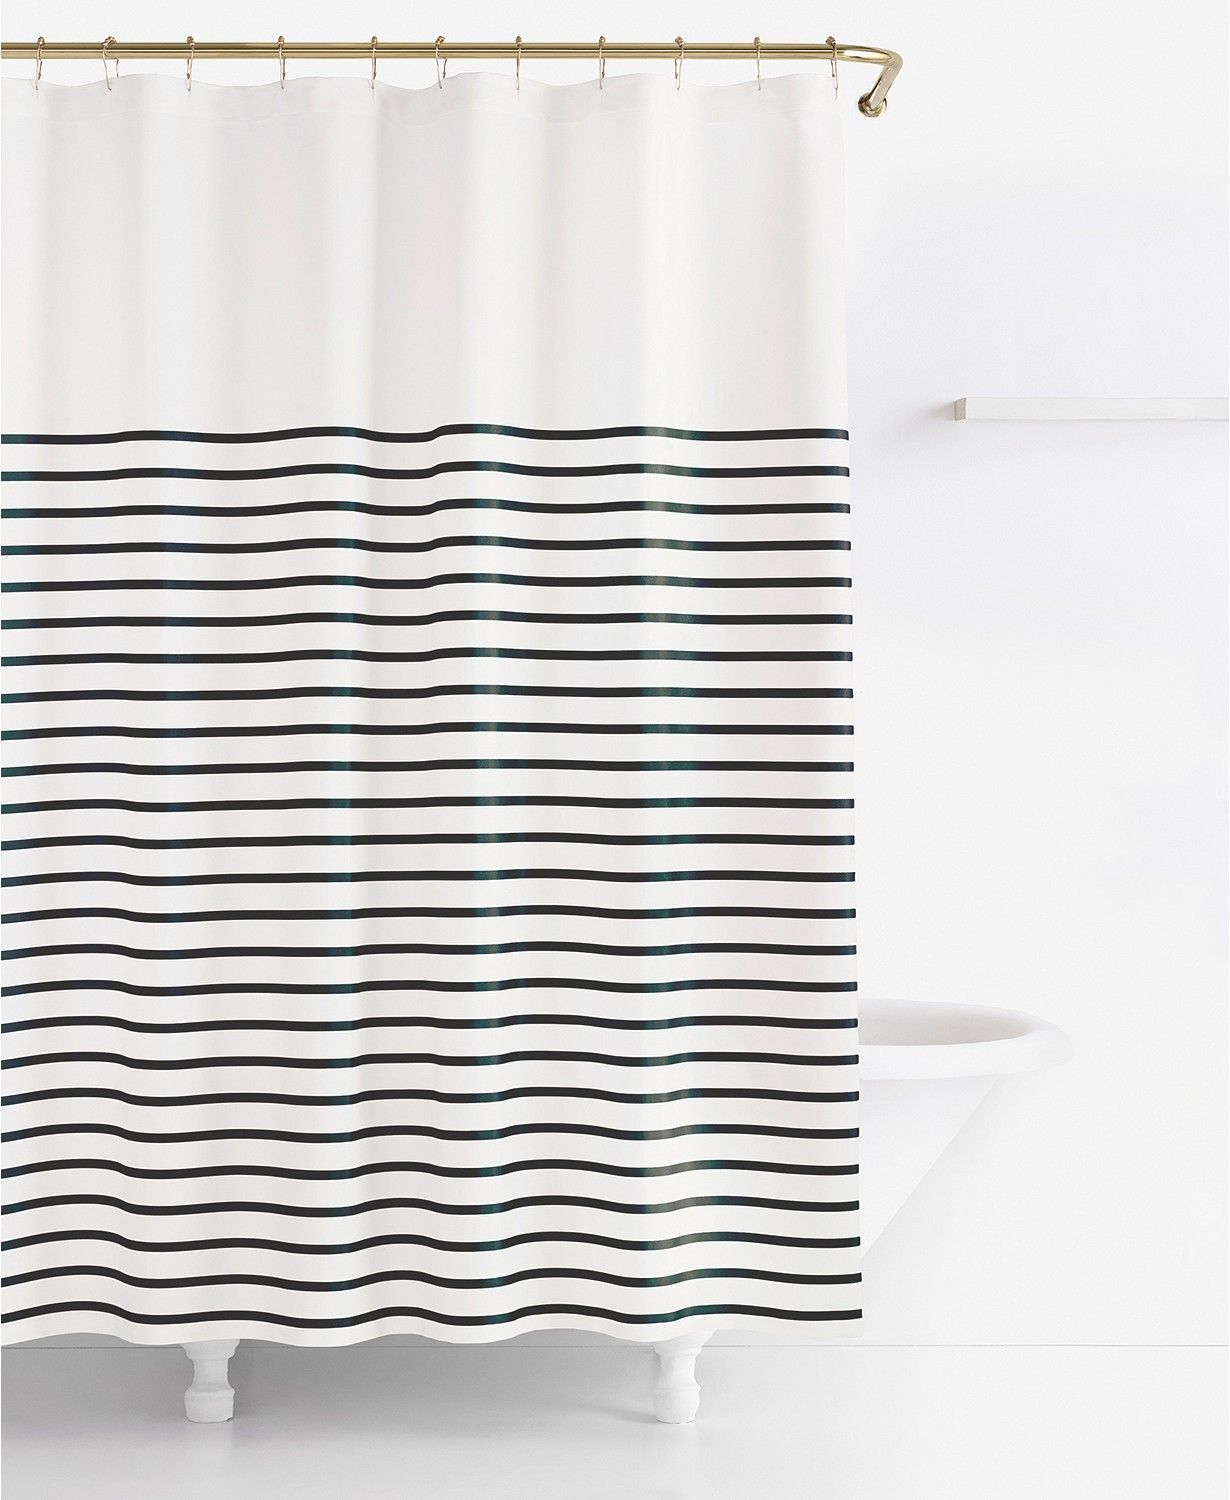 One Component That Can Make Your Scandinavian Bathroom Look Much More Attractive Is The Show Striped Shower Curtains Black Shower Curtains White Shower Curtain